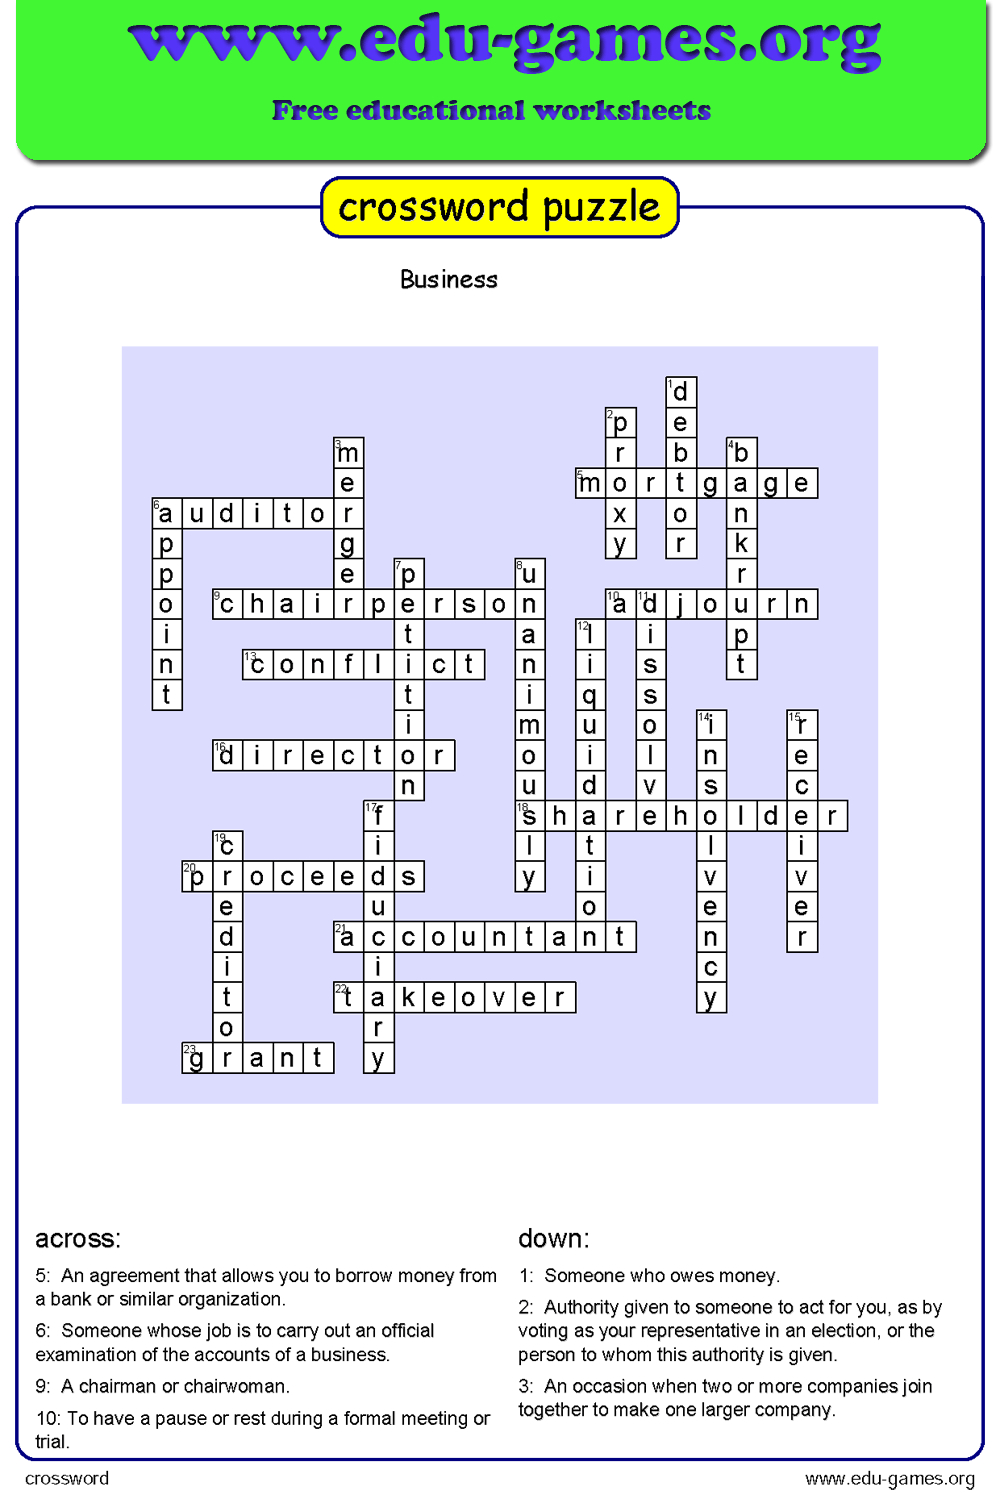 Free Crossword Maker For Kids - The Puzzle Maker Site - Create Your Own Crossword Puzzle Printable